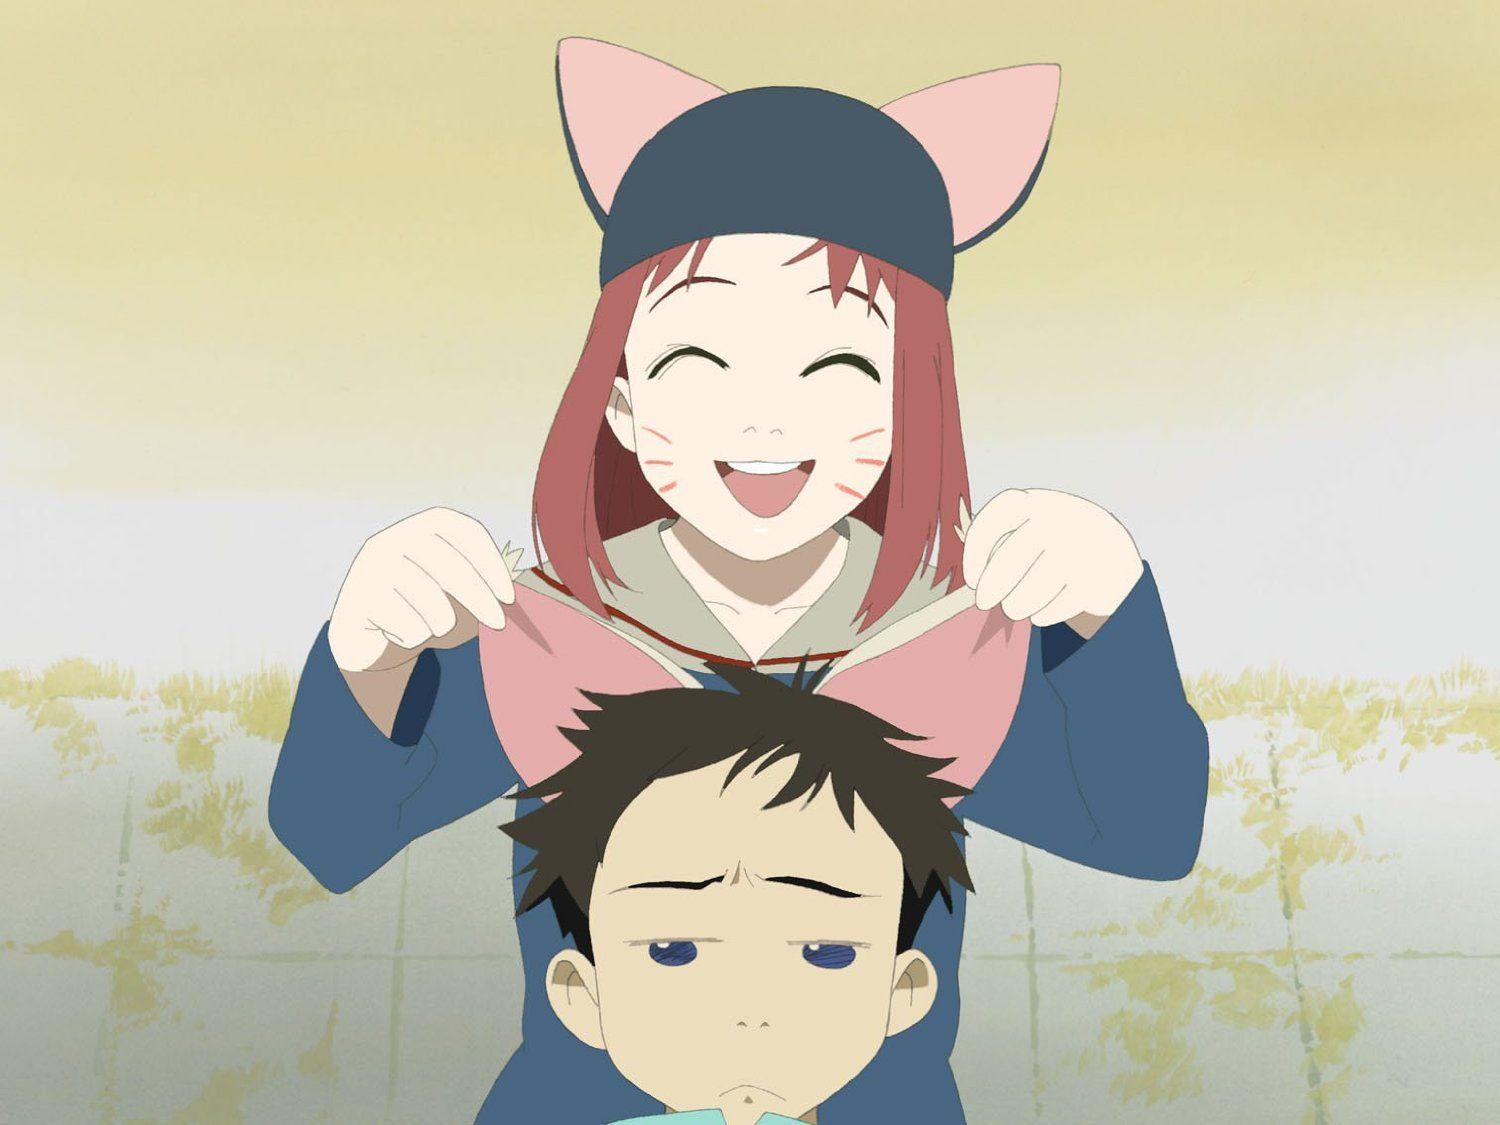 Mvm mobili ~ Mvm entertainment announces uk blu ray release of flcl will be